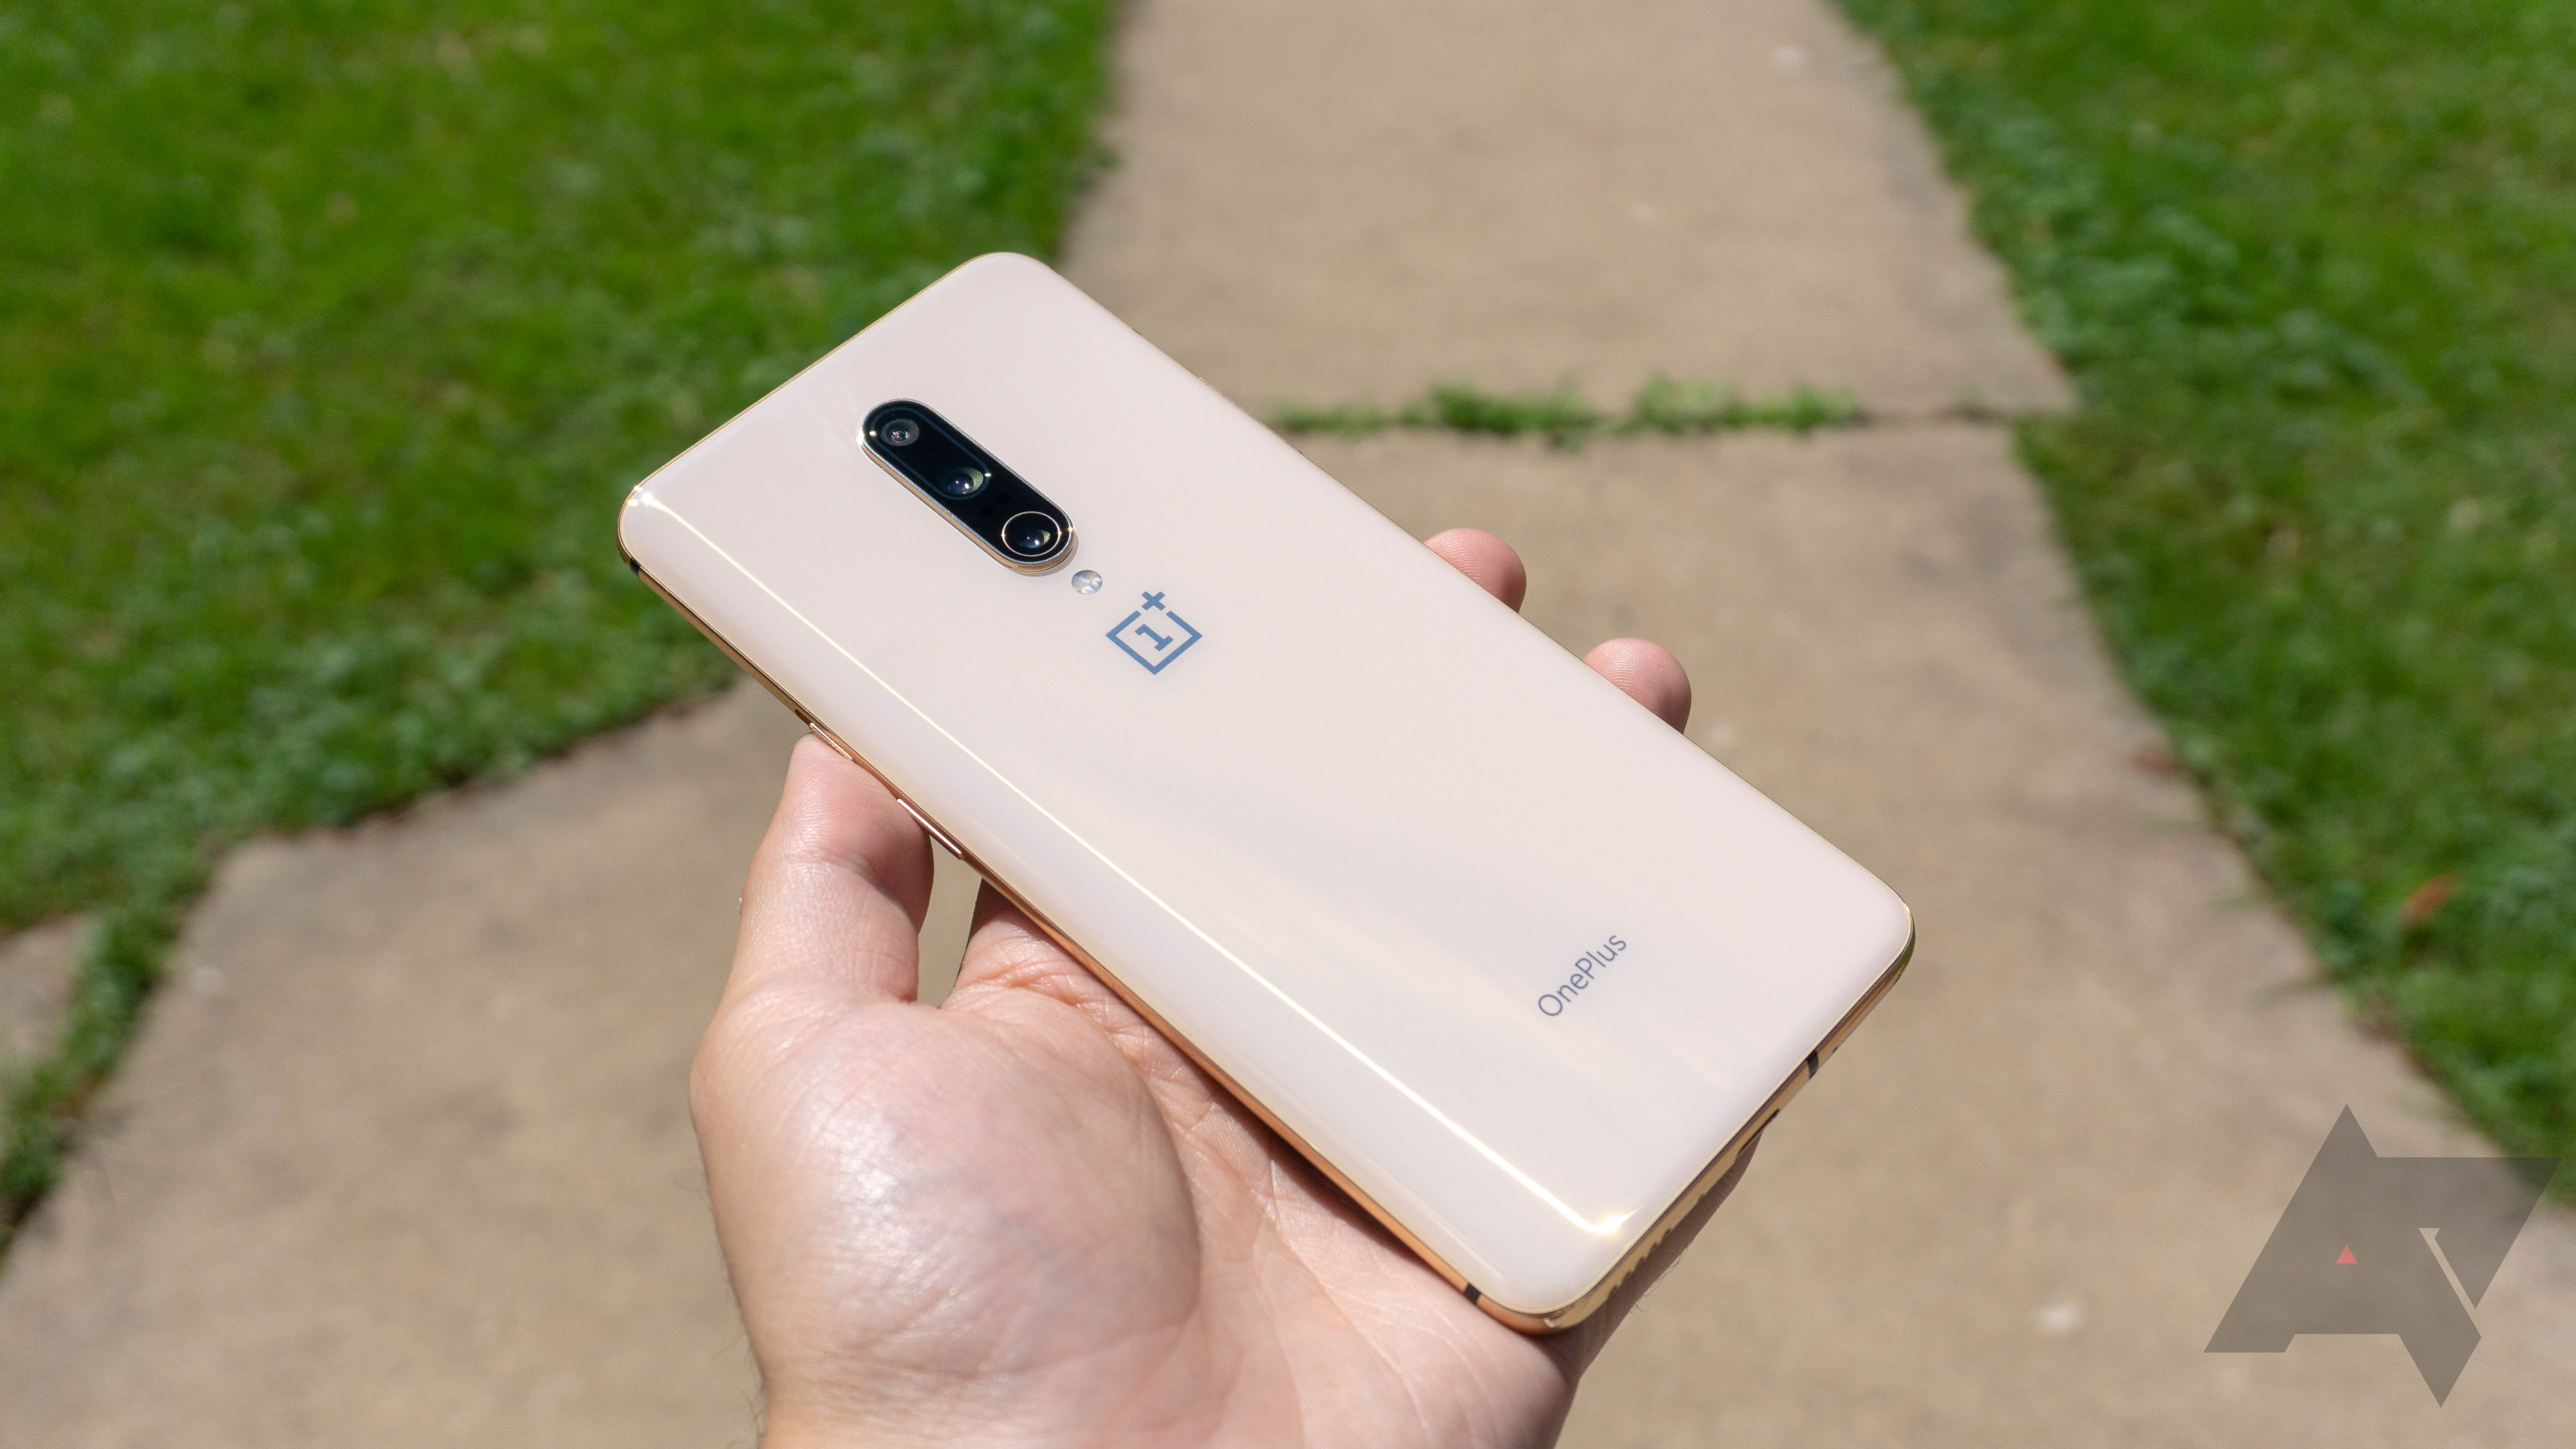 You can buy the gorgeous Almond OnePlus 7 Pro starting today